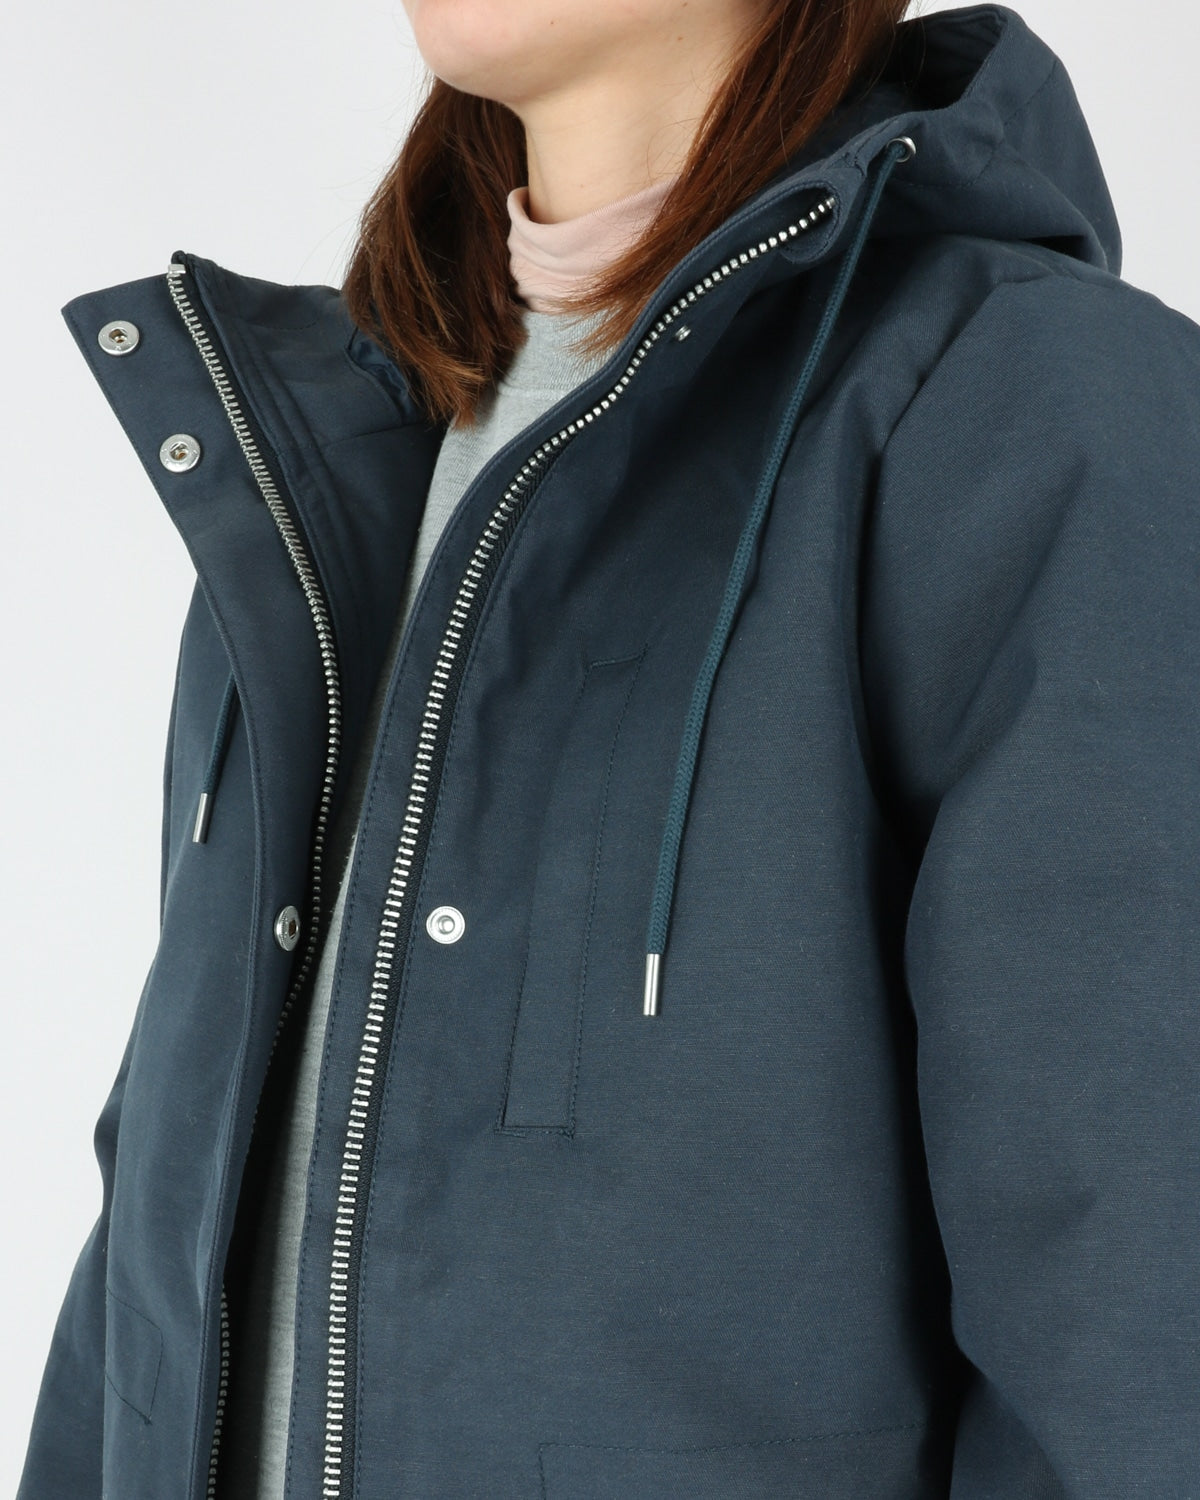 selfhood_77092 katrine jacket_navy_view_3_4